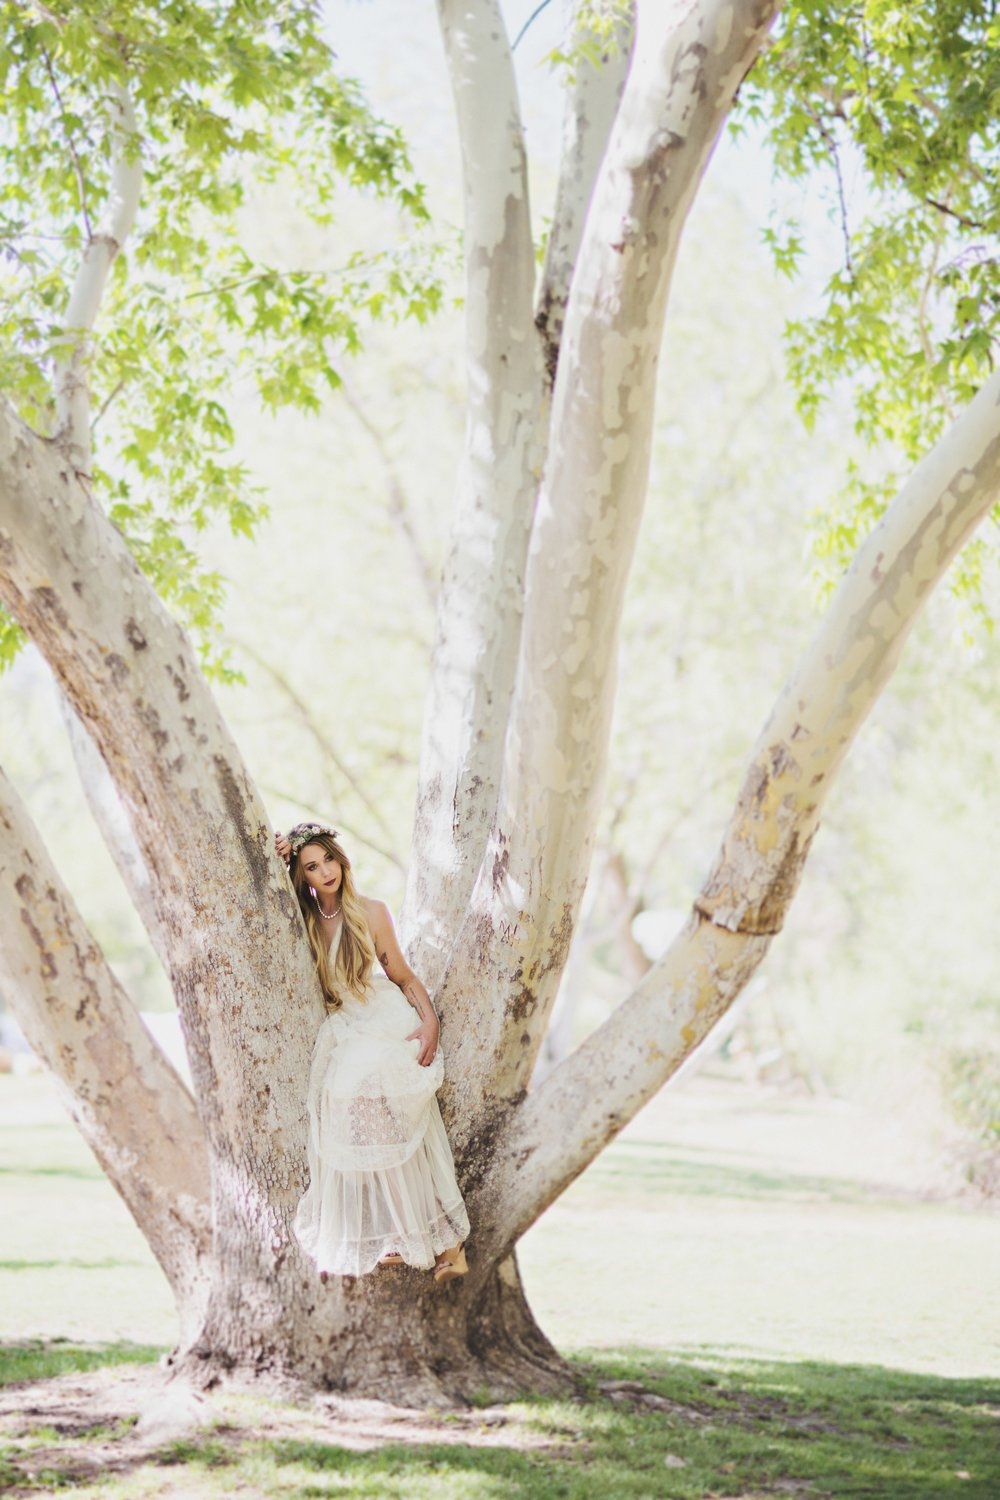 weddings-payson-01.jpg